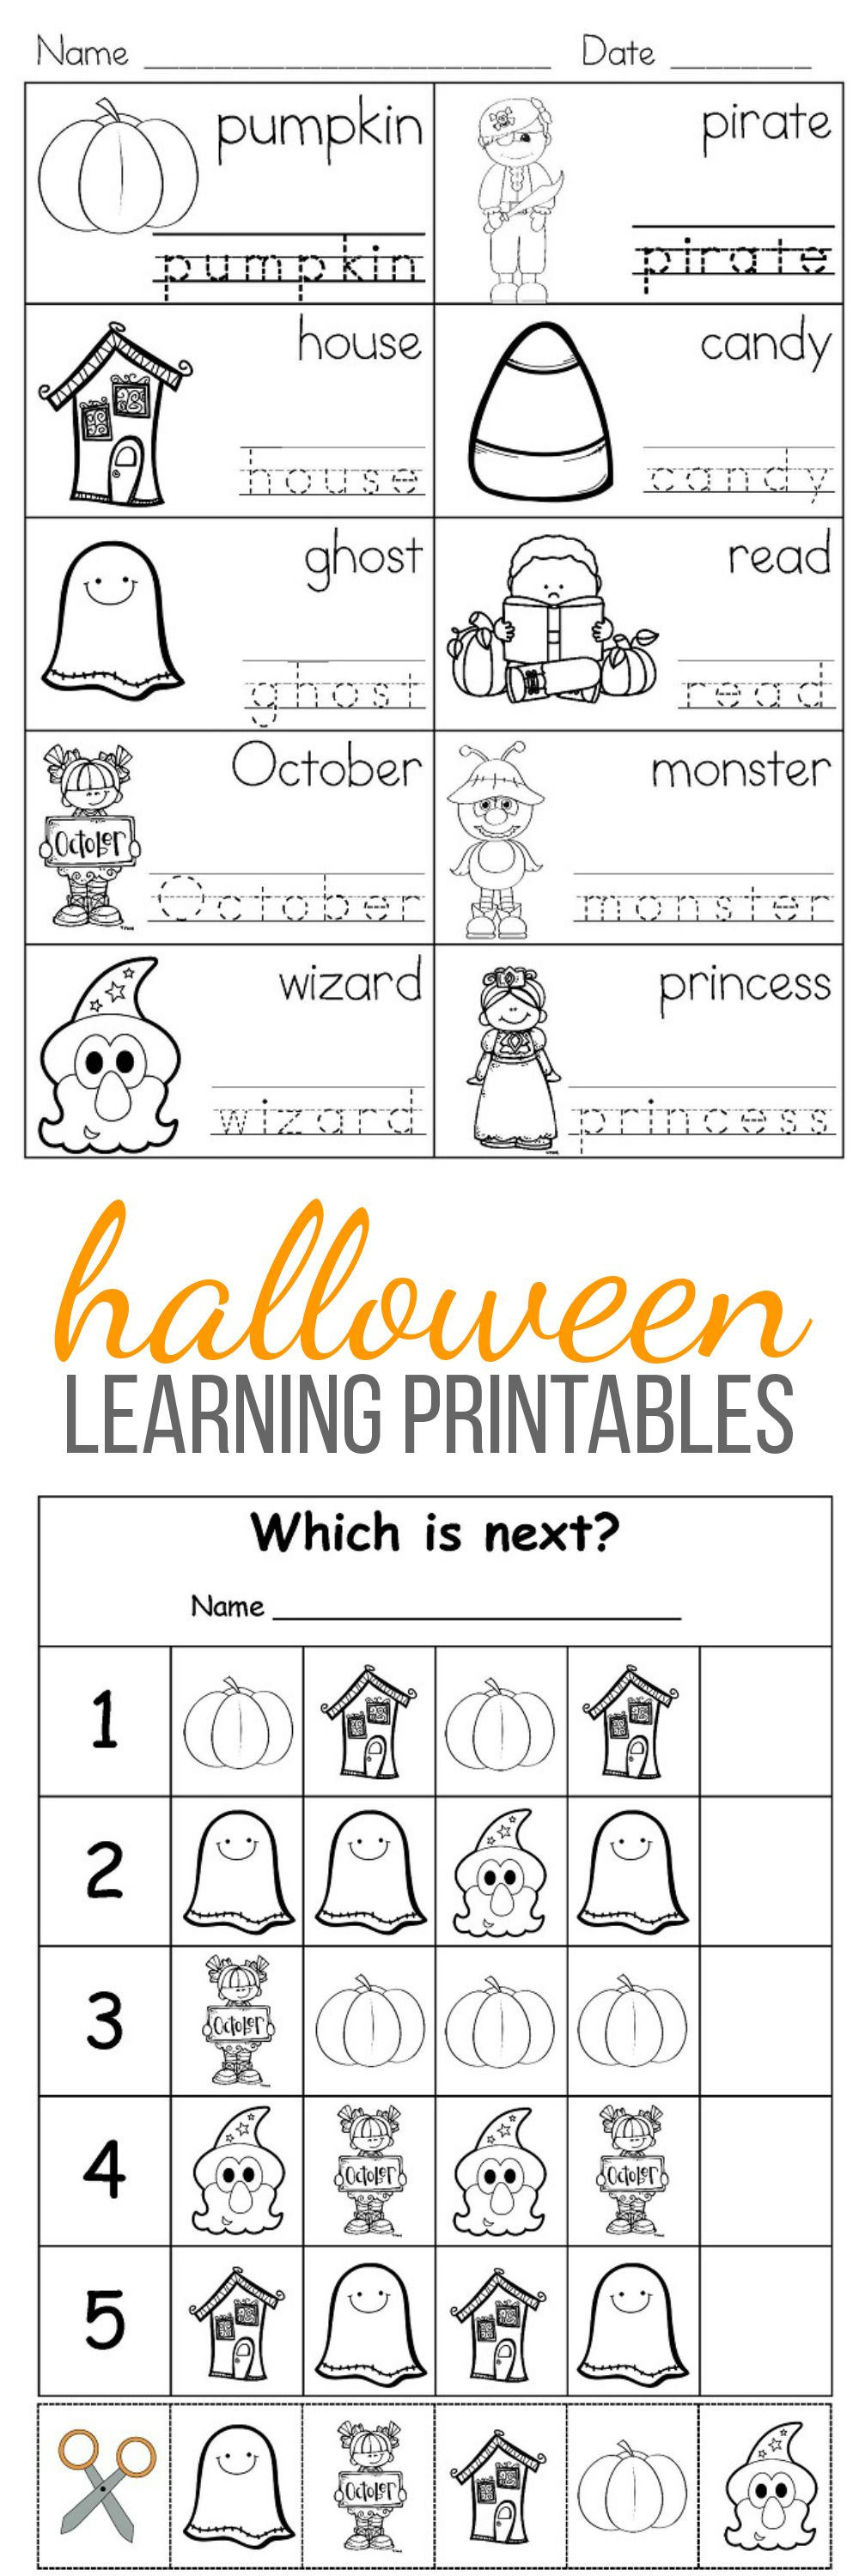 Halloween Fun Learning Printables For Kids Halloween Worksheets